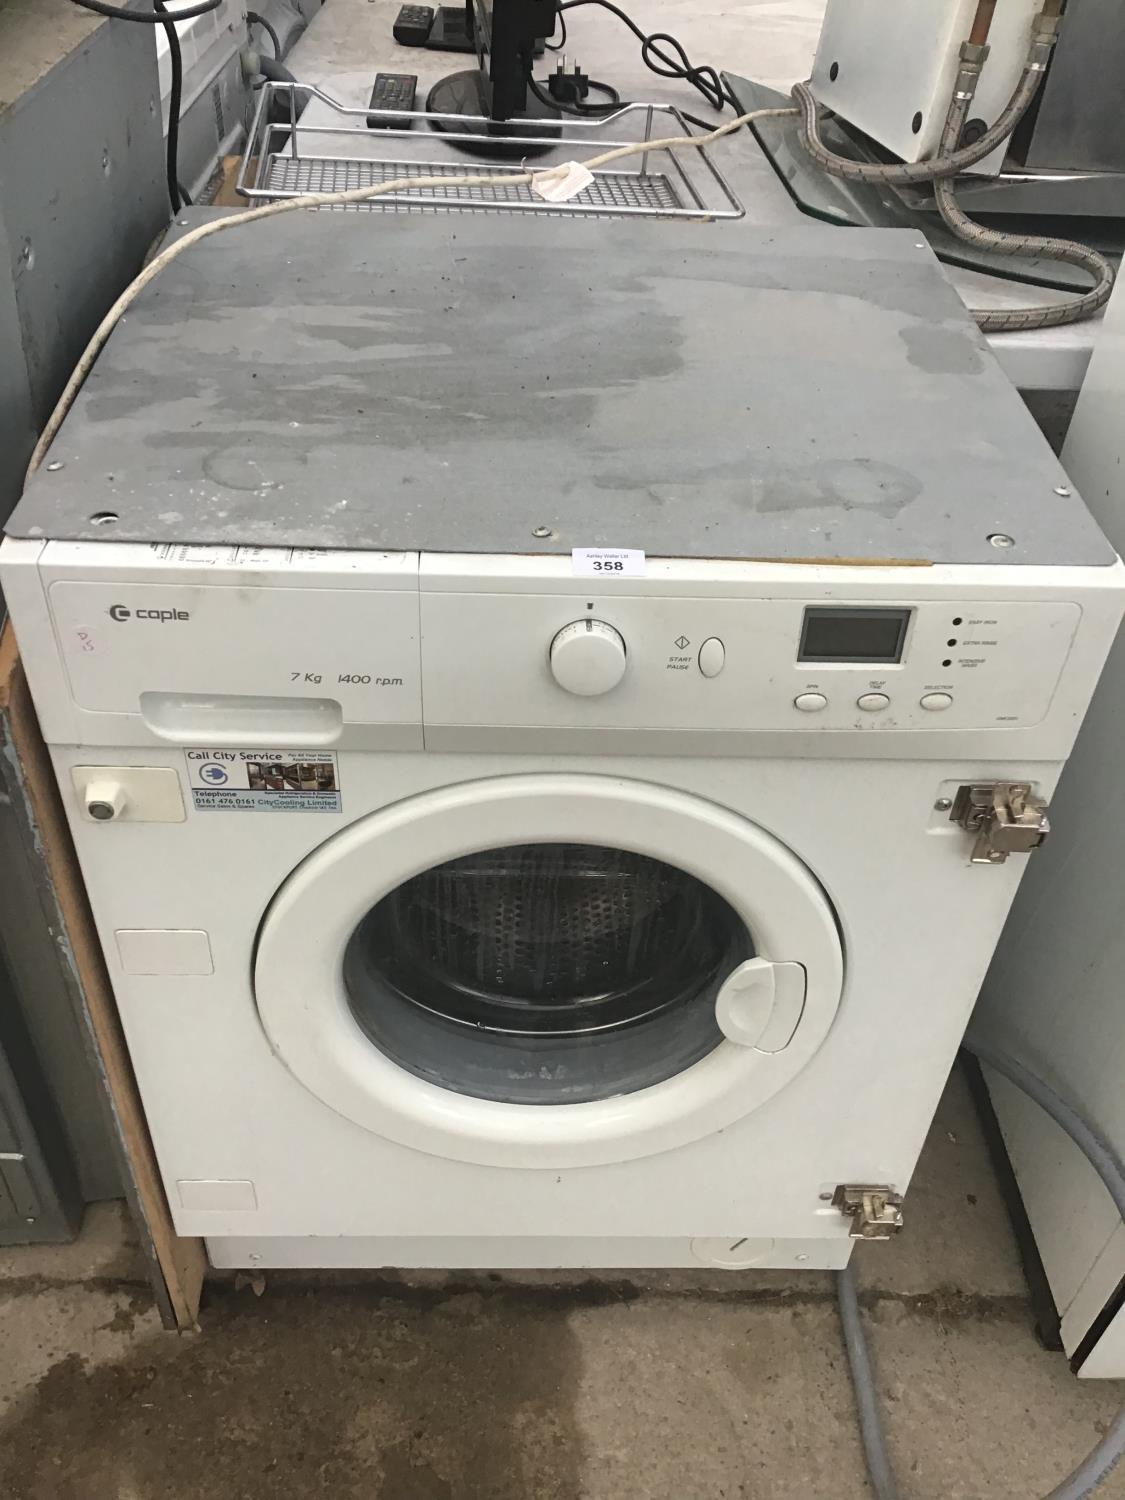 Lot 358 - AN INTEGRATED COPLE WASHER IN WORKING ORDER